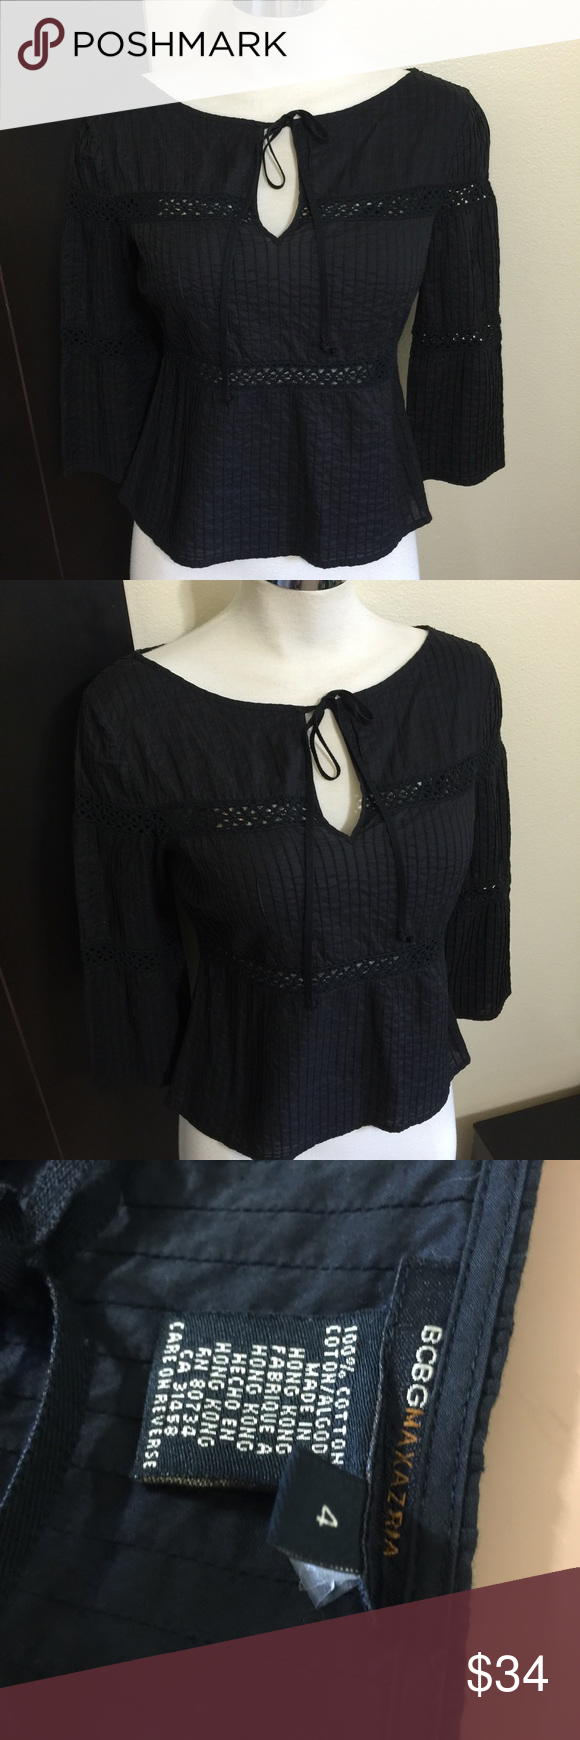 BCBG MAX AZRIA Black Cotton Peasant Blouse S 2 4 Label-BCBG MAX AZRIA  Style- Black Micropleated Cotton BoHo Peasant Blouse Top, Boatneck tie neck, 3/4 slight bell sleeves,  Size-4 Shown on a 2 Will fit XS S 0 2 4 Measurements-B-35 W-30 H-35 -Length from underarm seam to hem-13  Color-Inky Black, lightened to show detail  Fabric-100% Medium weight cotton Condition-NWOT  Origin-China BCBGMaxAzria Tops Blouses